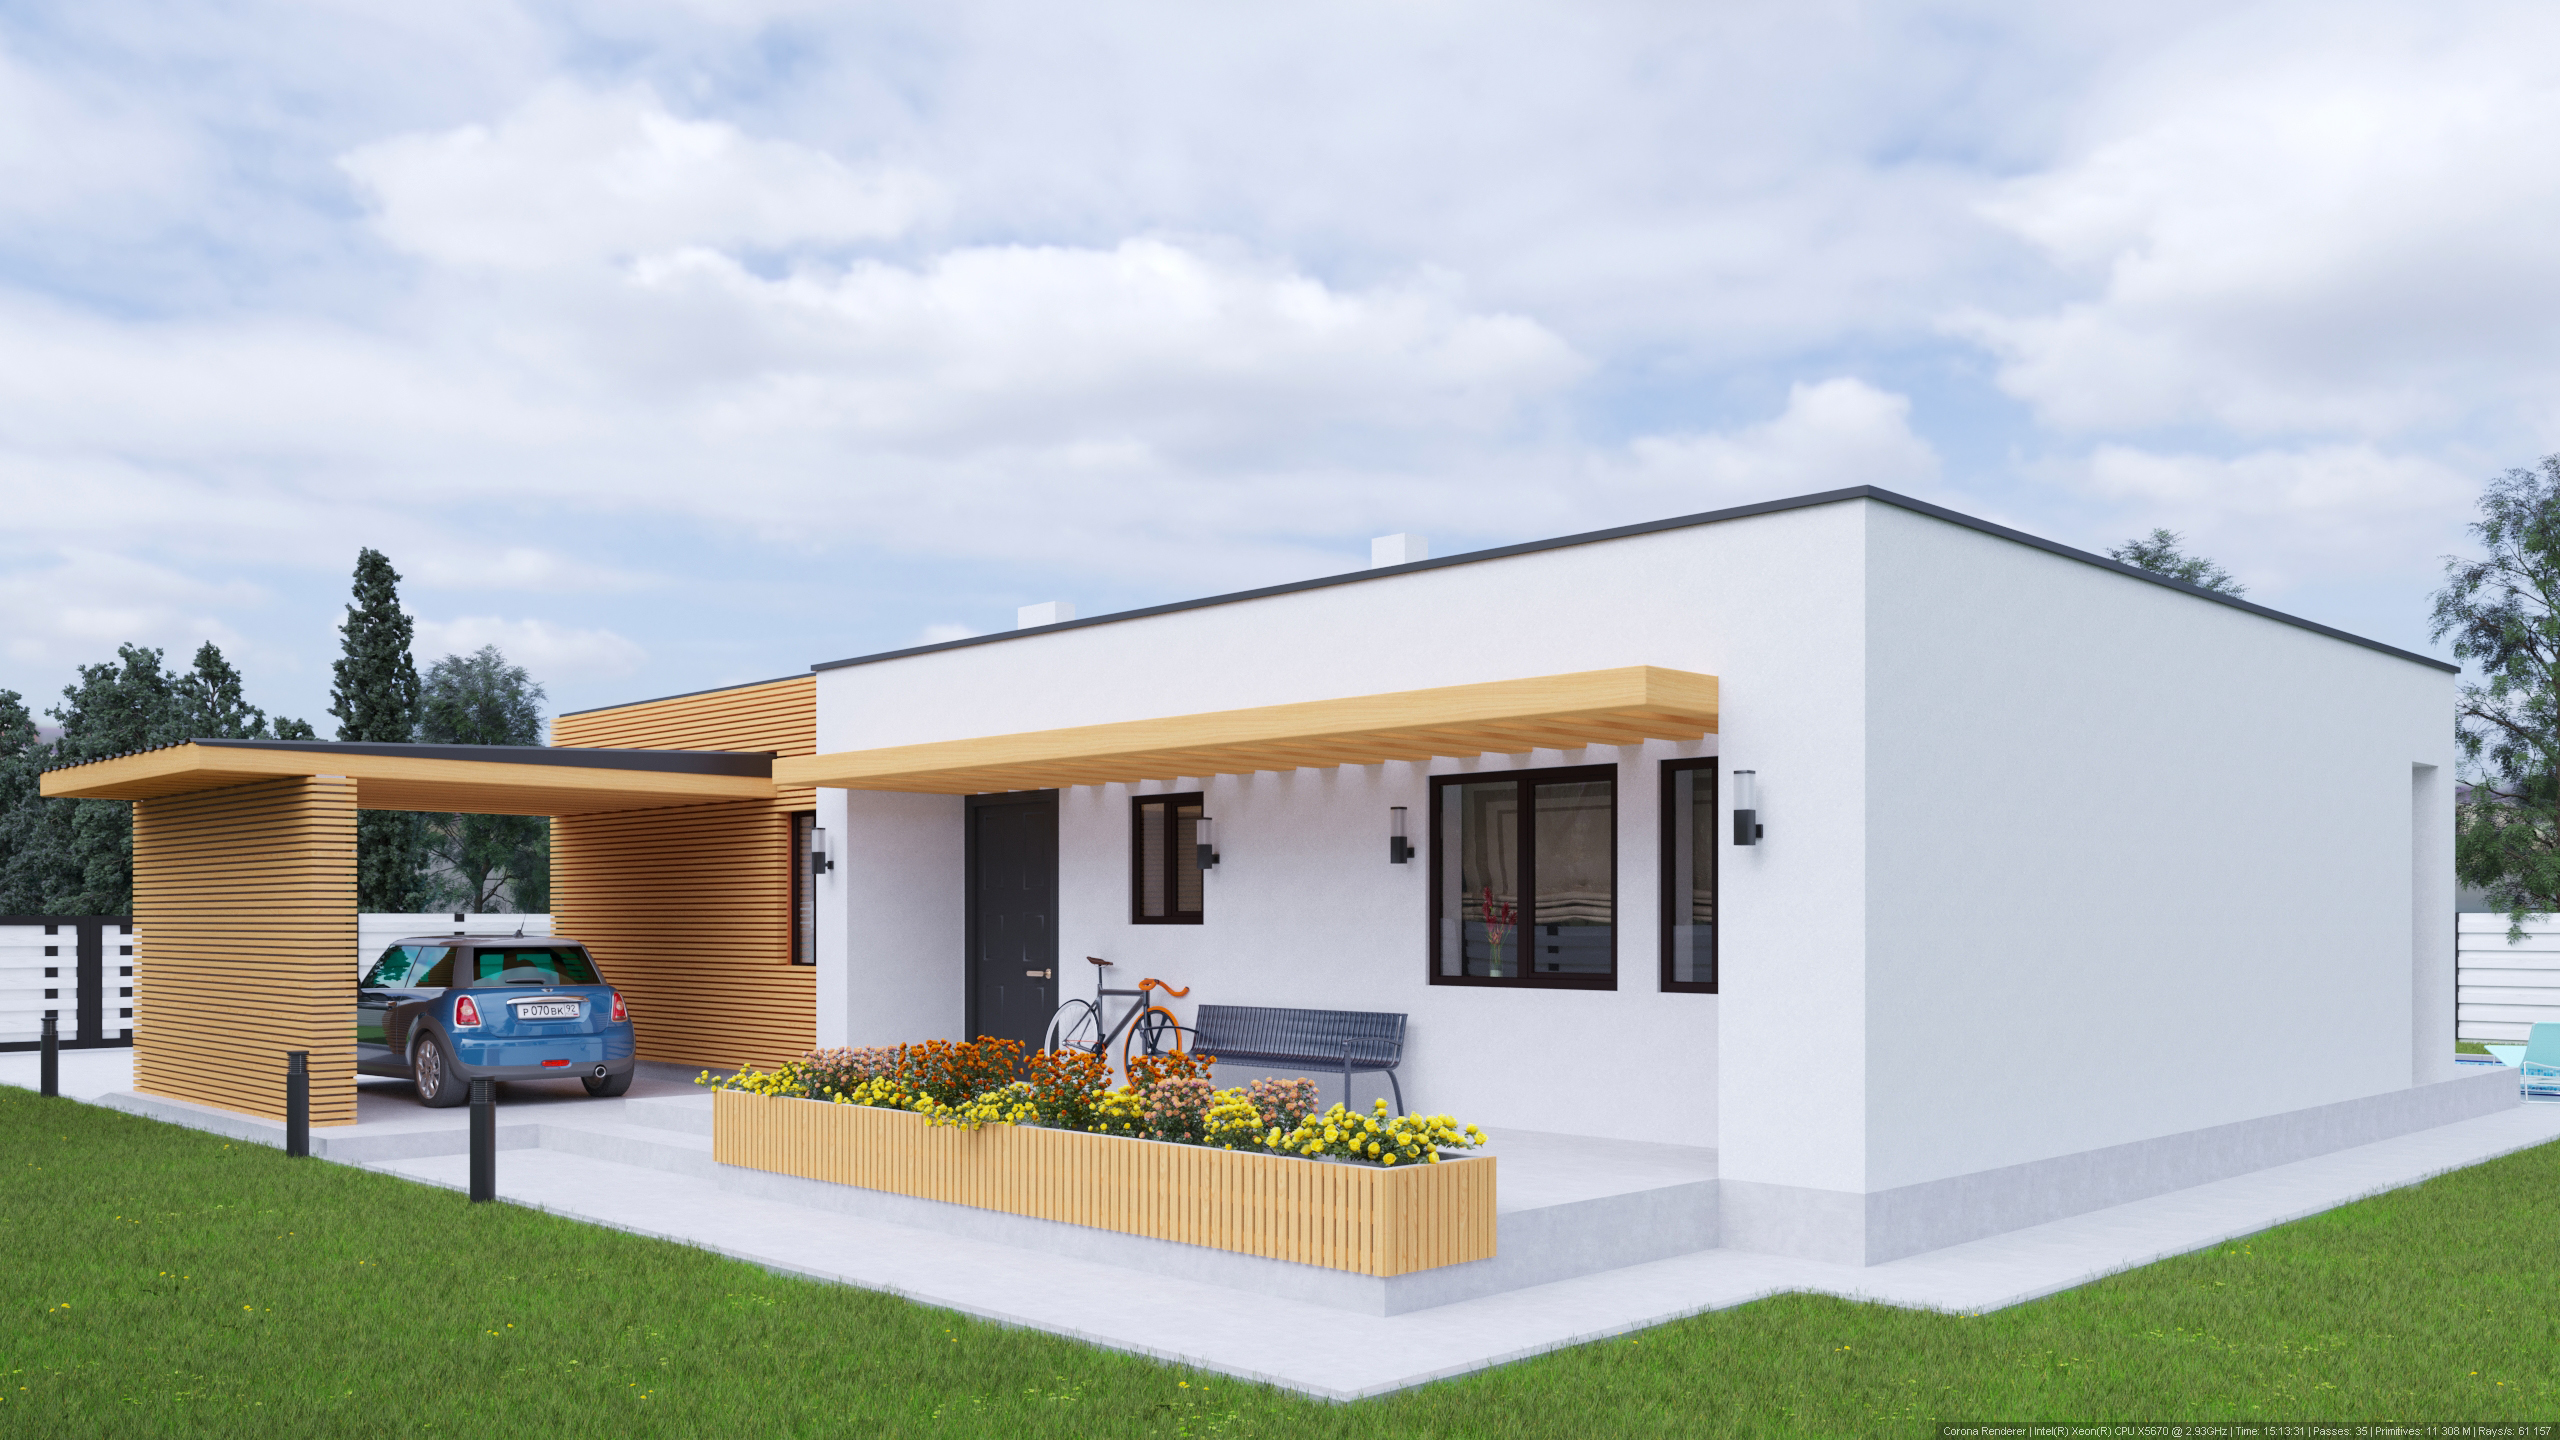 House on the plot V2 in 3d max corona render image